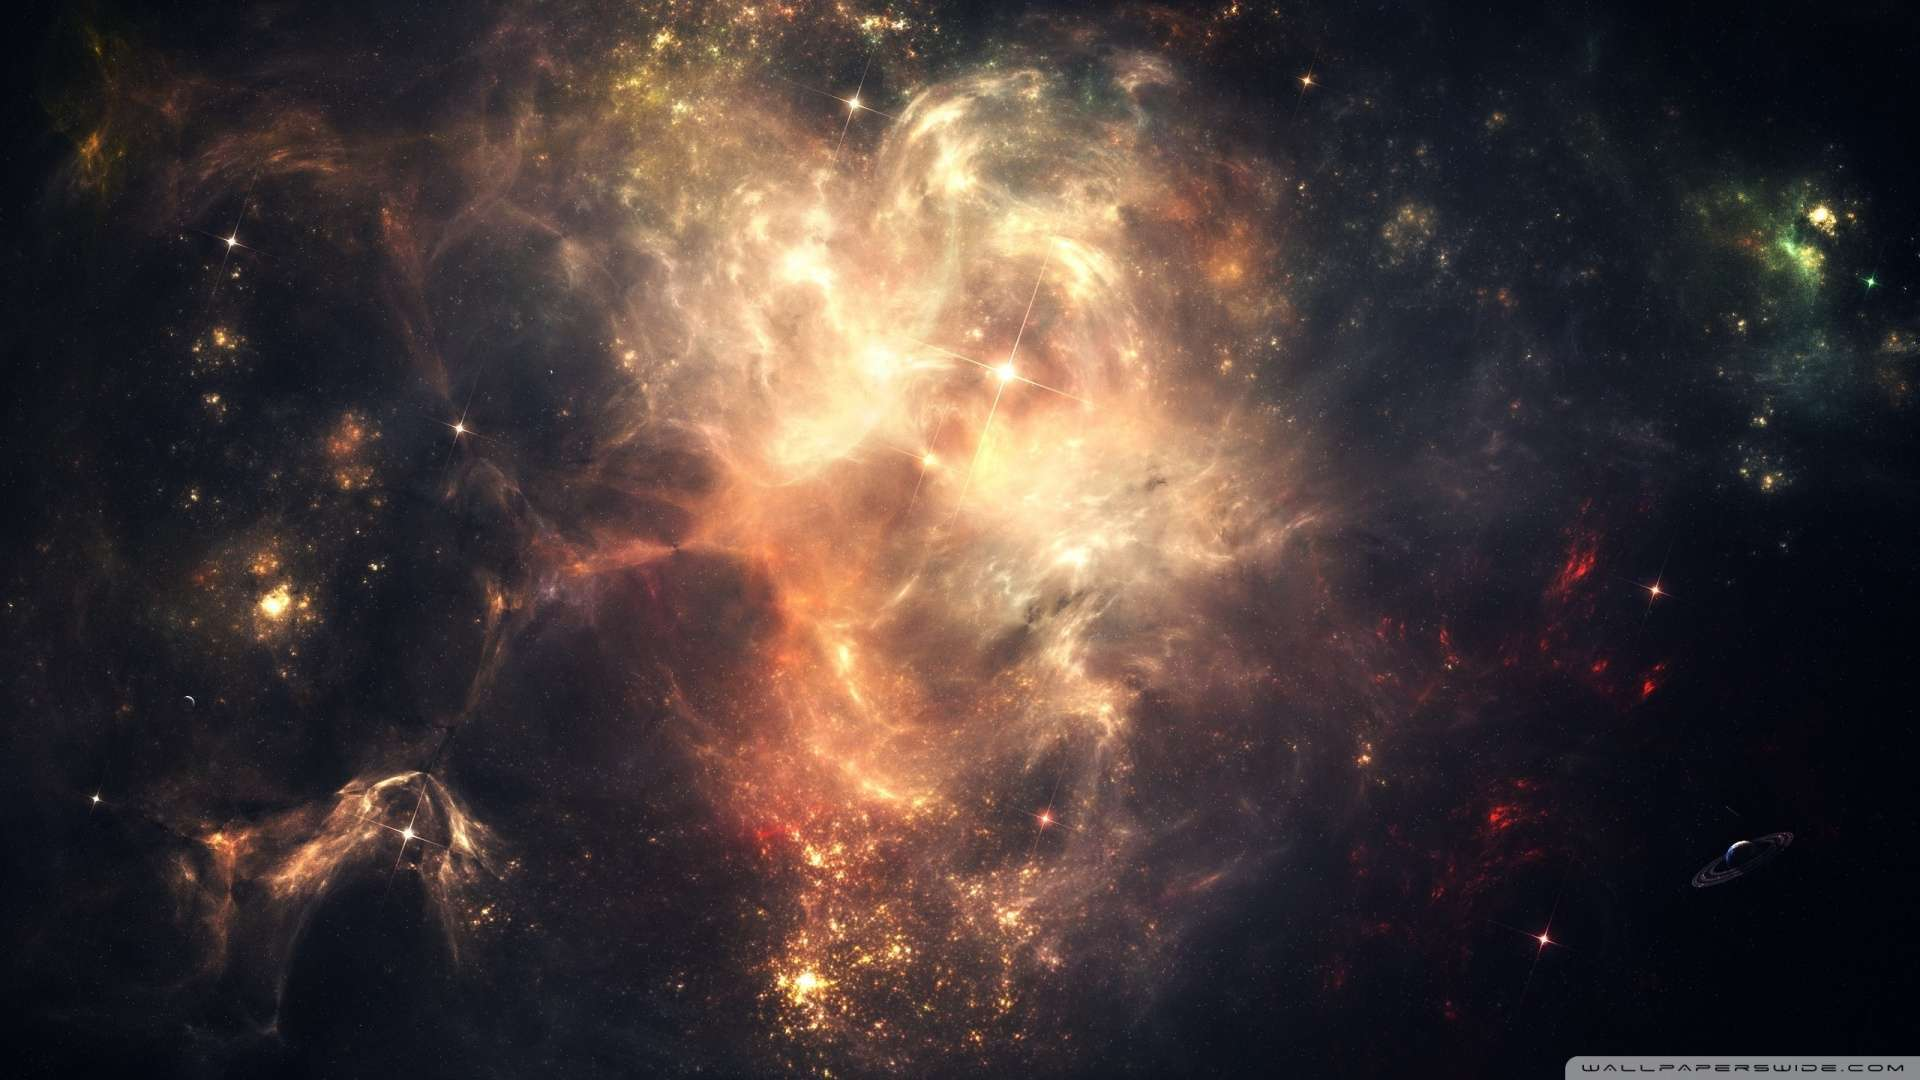 Free Download Wallpaper Outer Space Nebulae Wallpaper 1080p